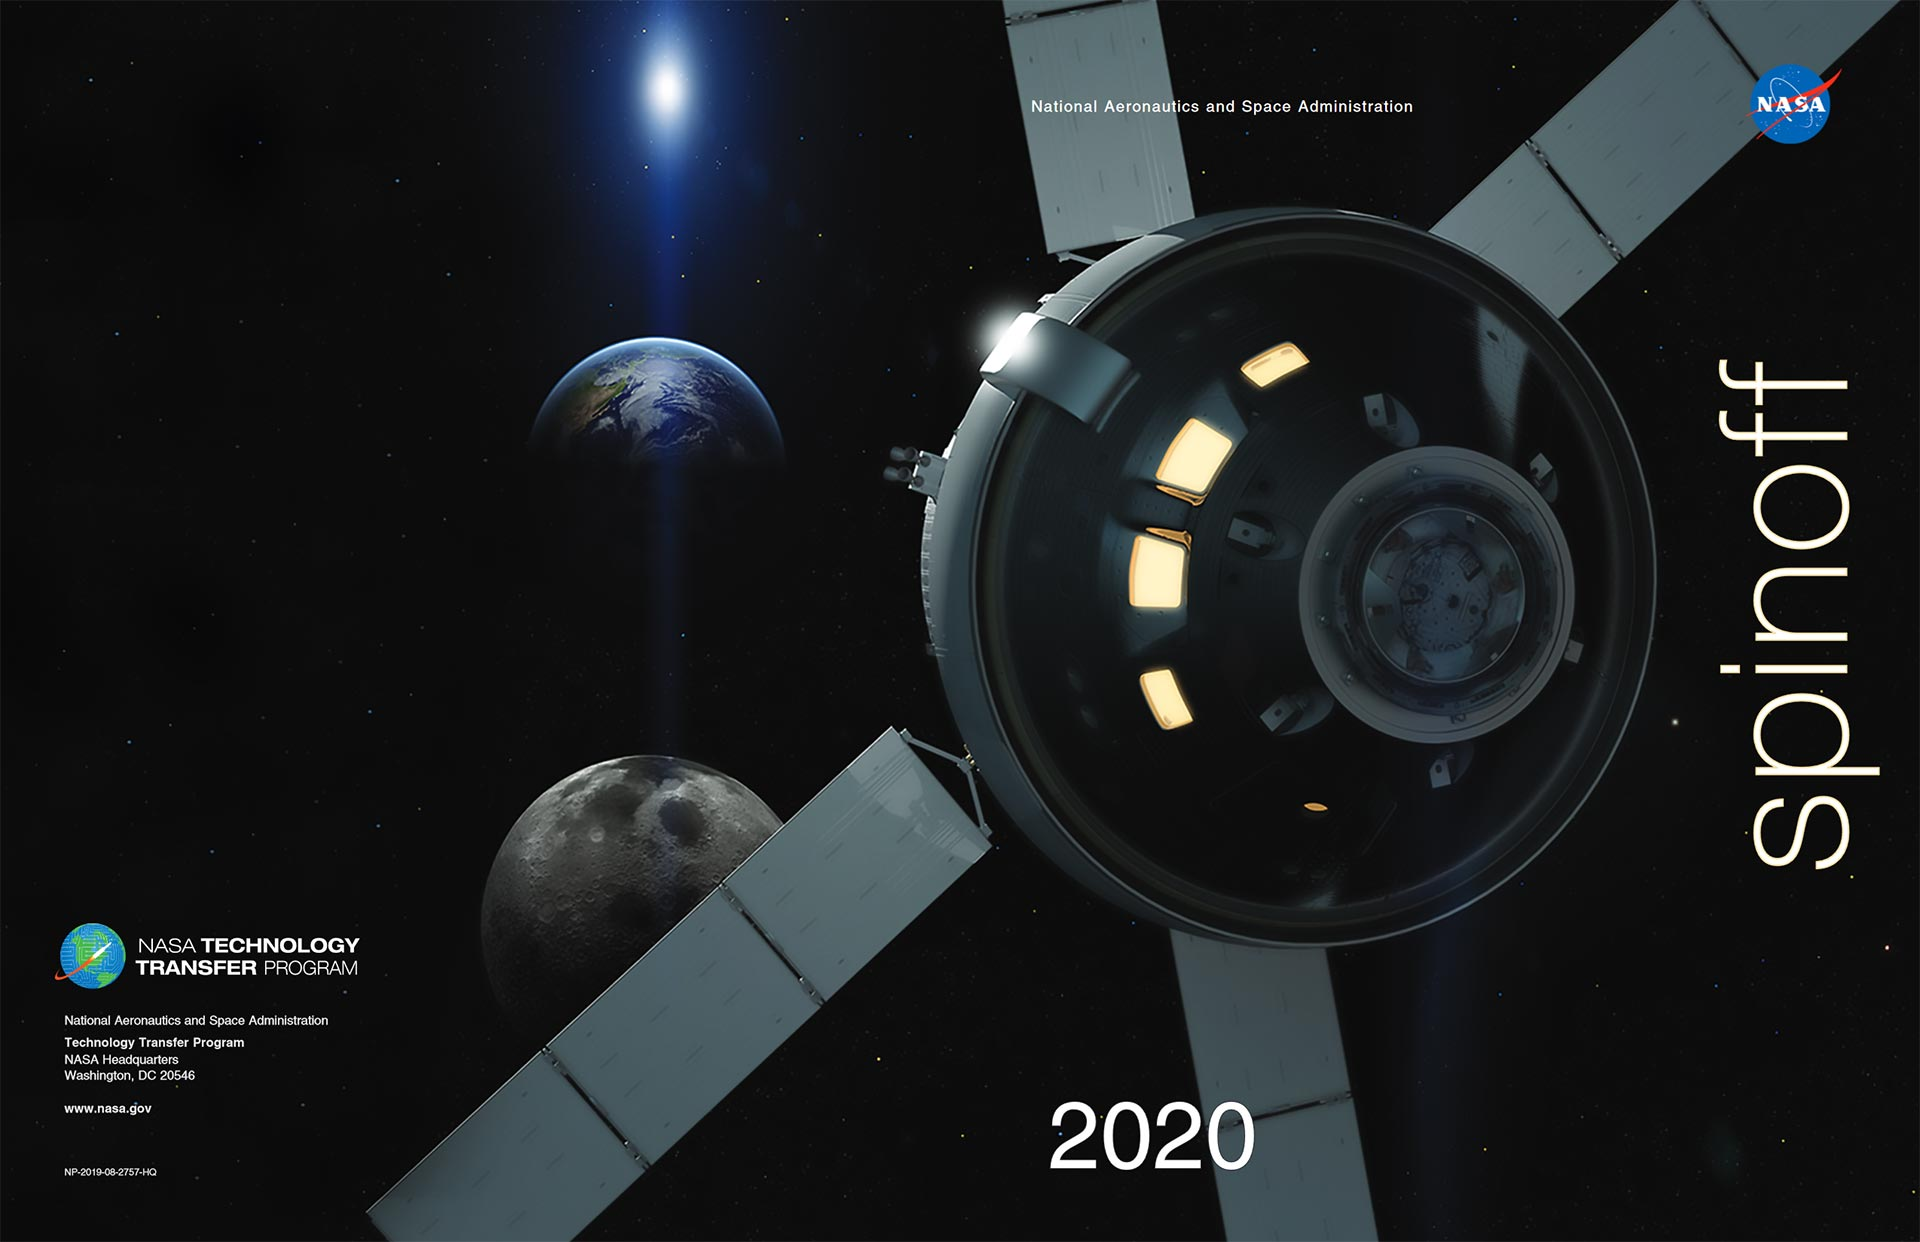 NASA Spinoff 2020 Brochure Cover